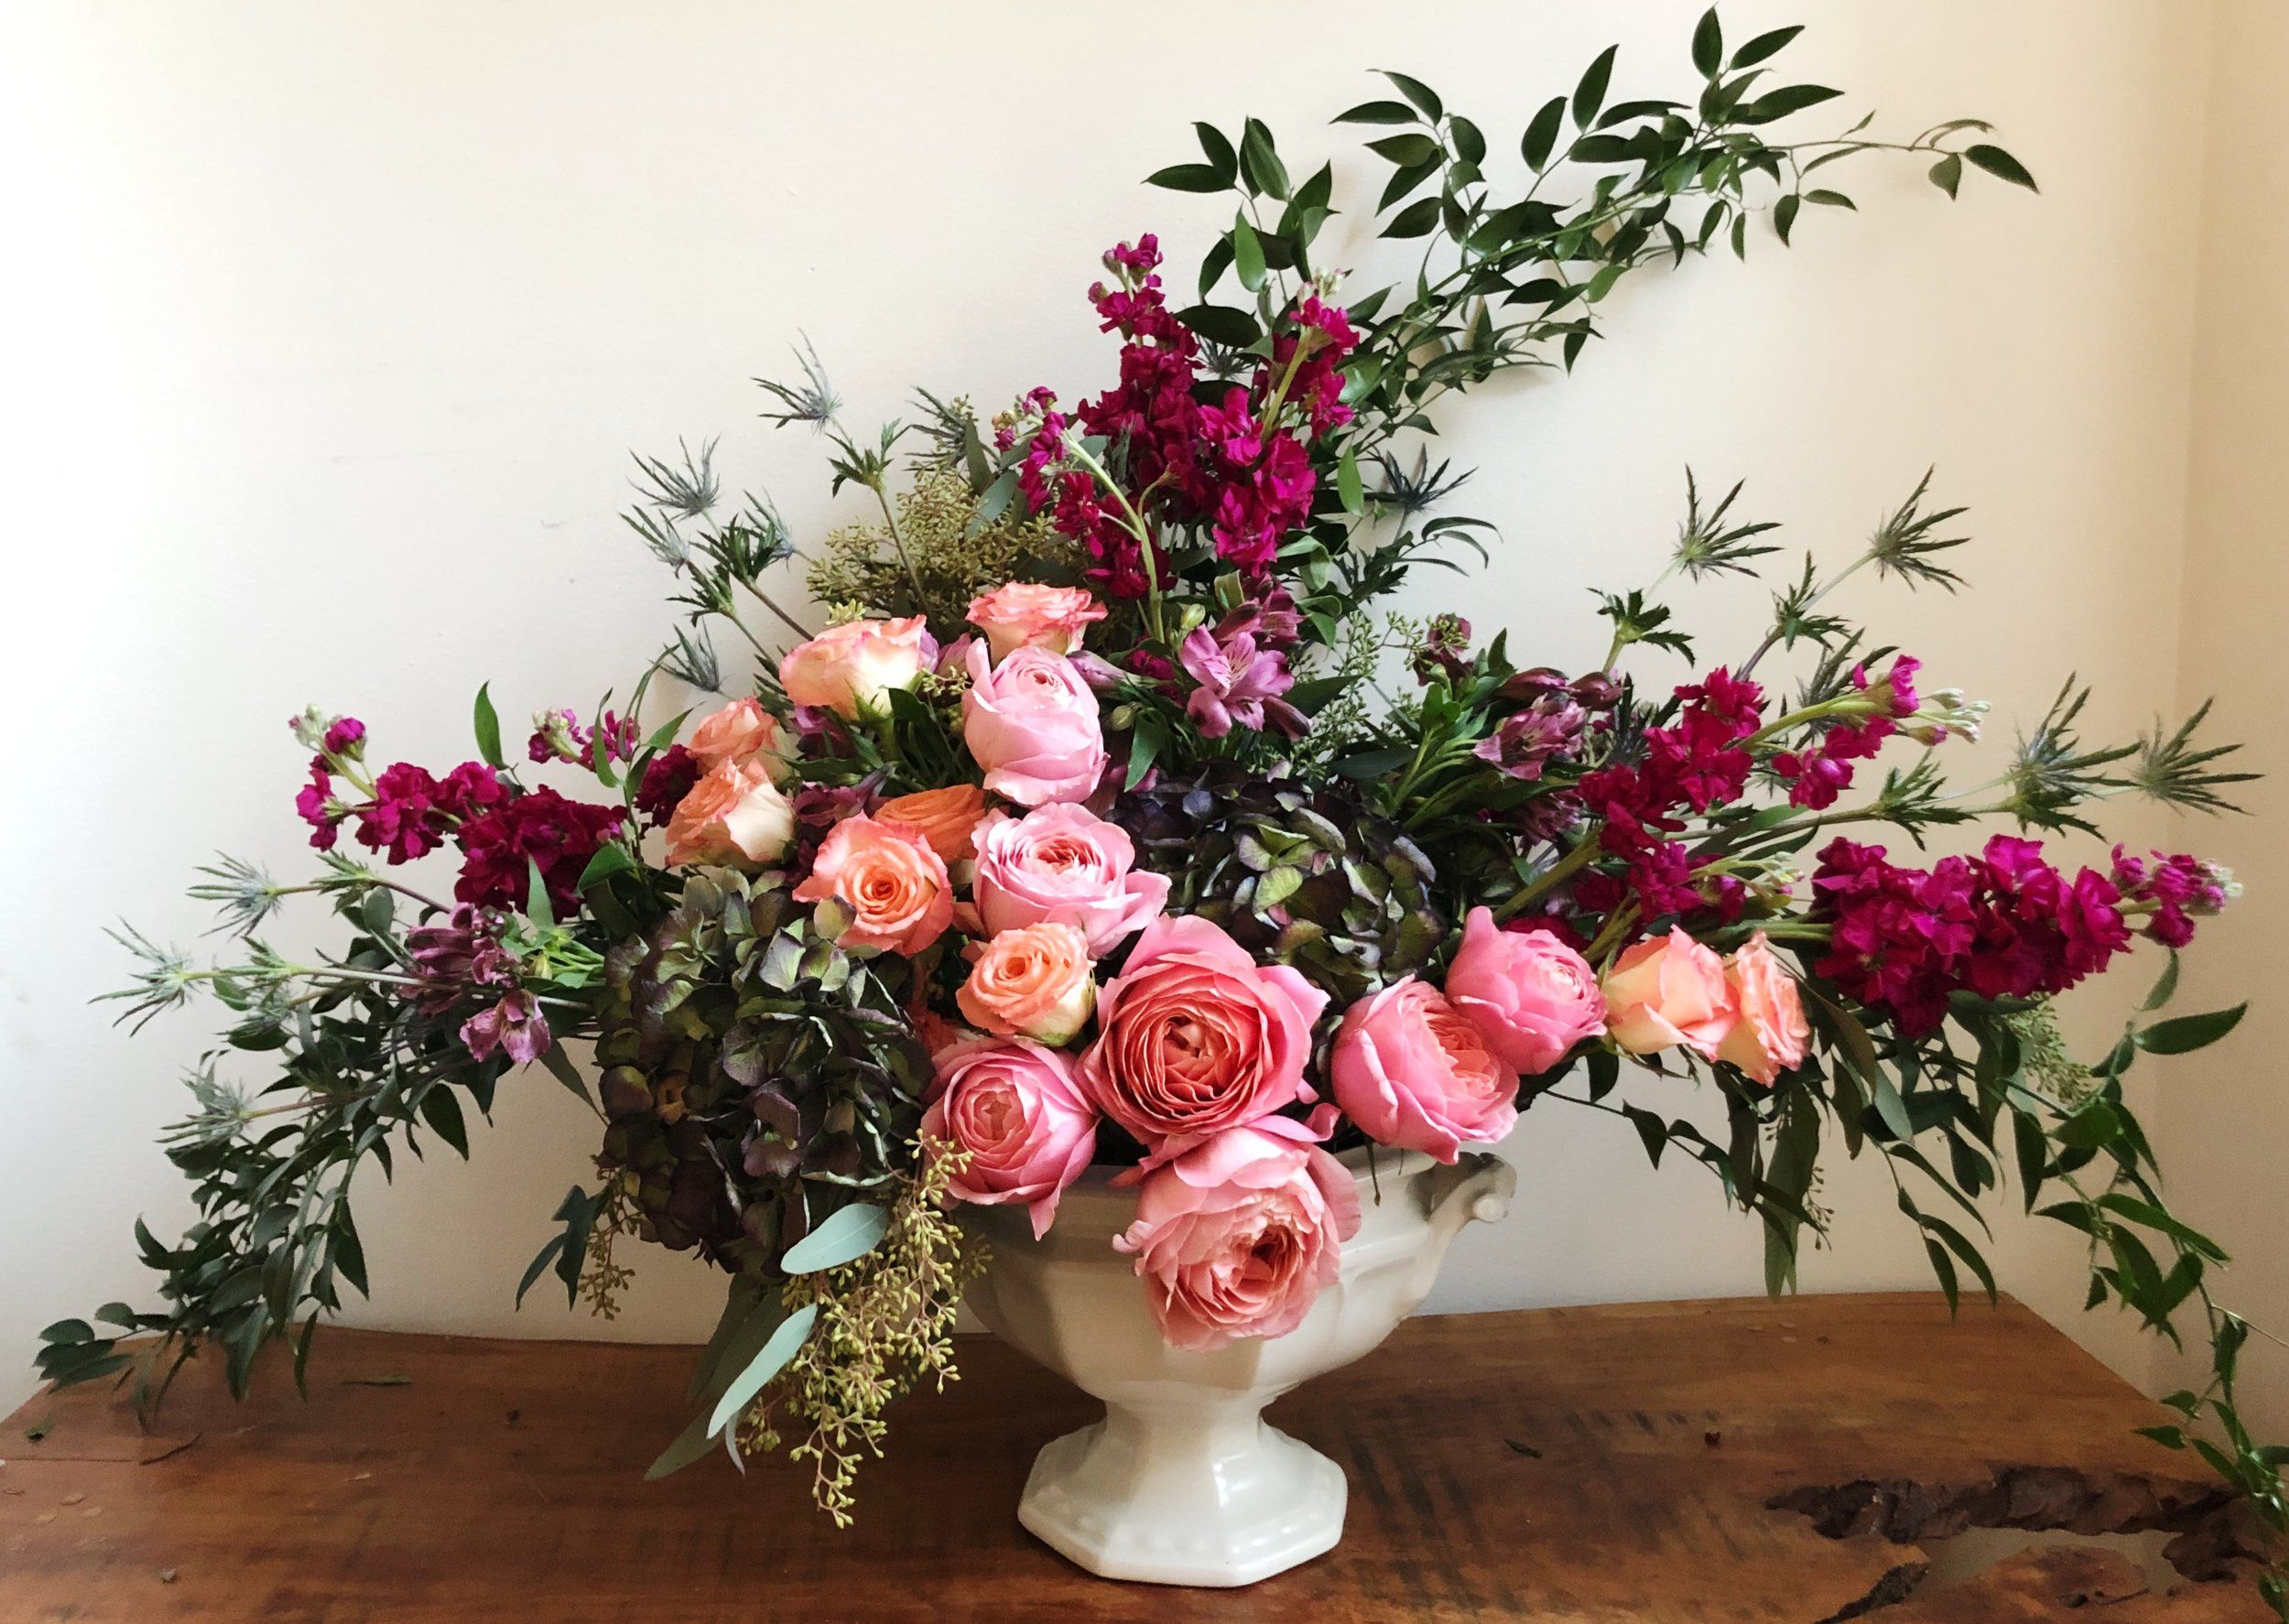 Eucalyptus Garden Roses And Stock For A Lovely English Garden Look Corporate Flowers Flowers Flower Delivery